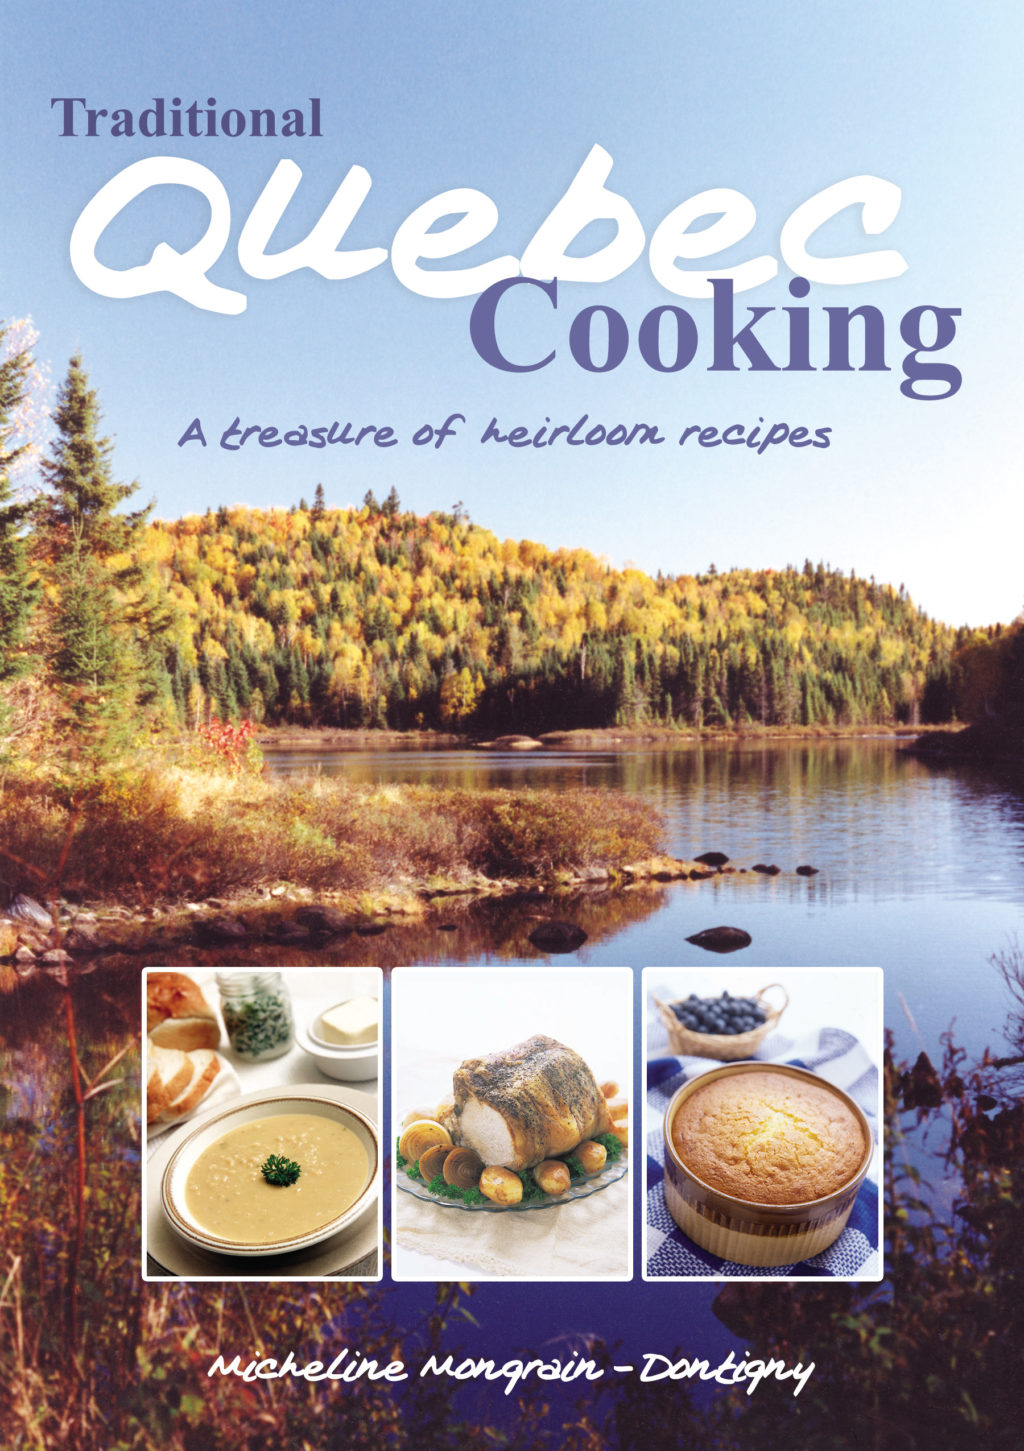 Traditional Quebec Cooking